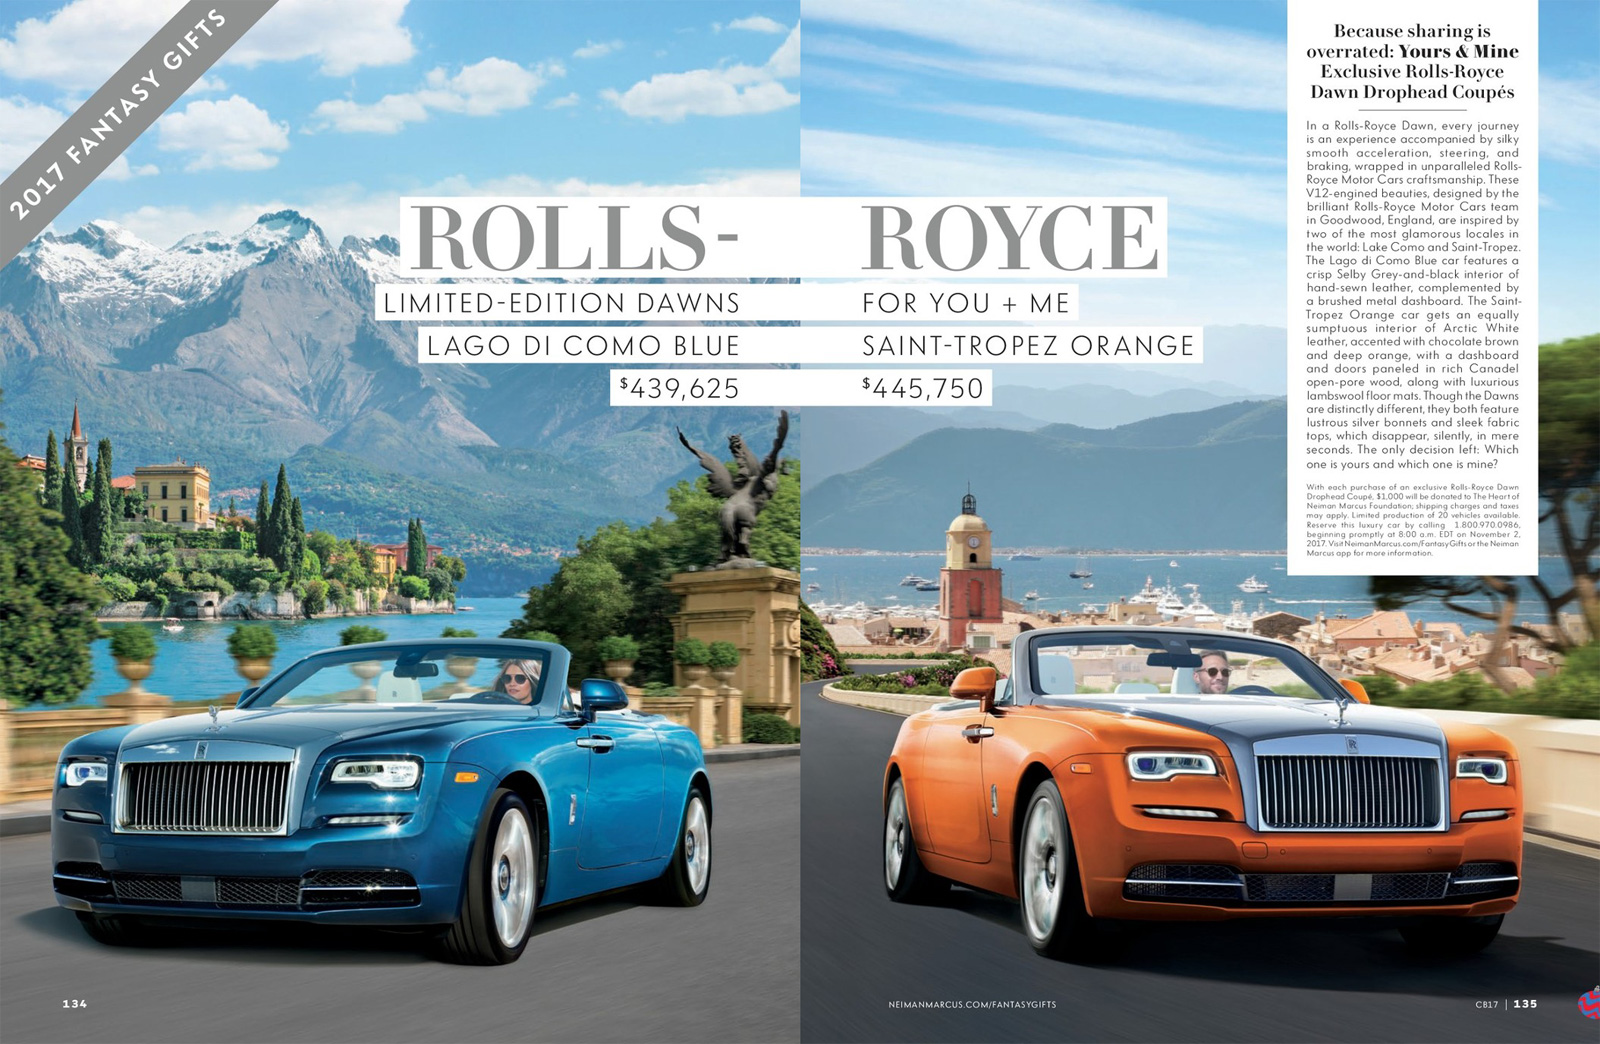 Two Limited Edition Rolls Royce Dawns Are This Yearu0027s Fantasy Gifts In The  Neiman Marcus Christmas Book.